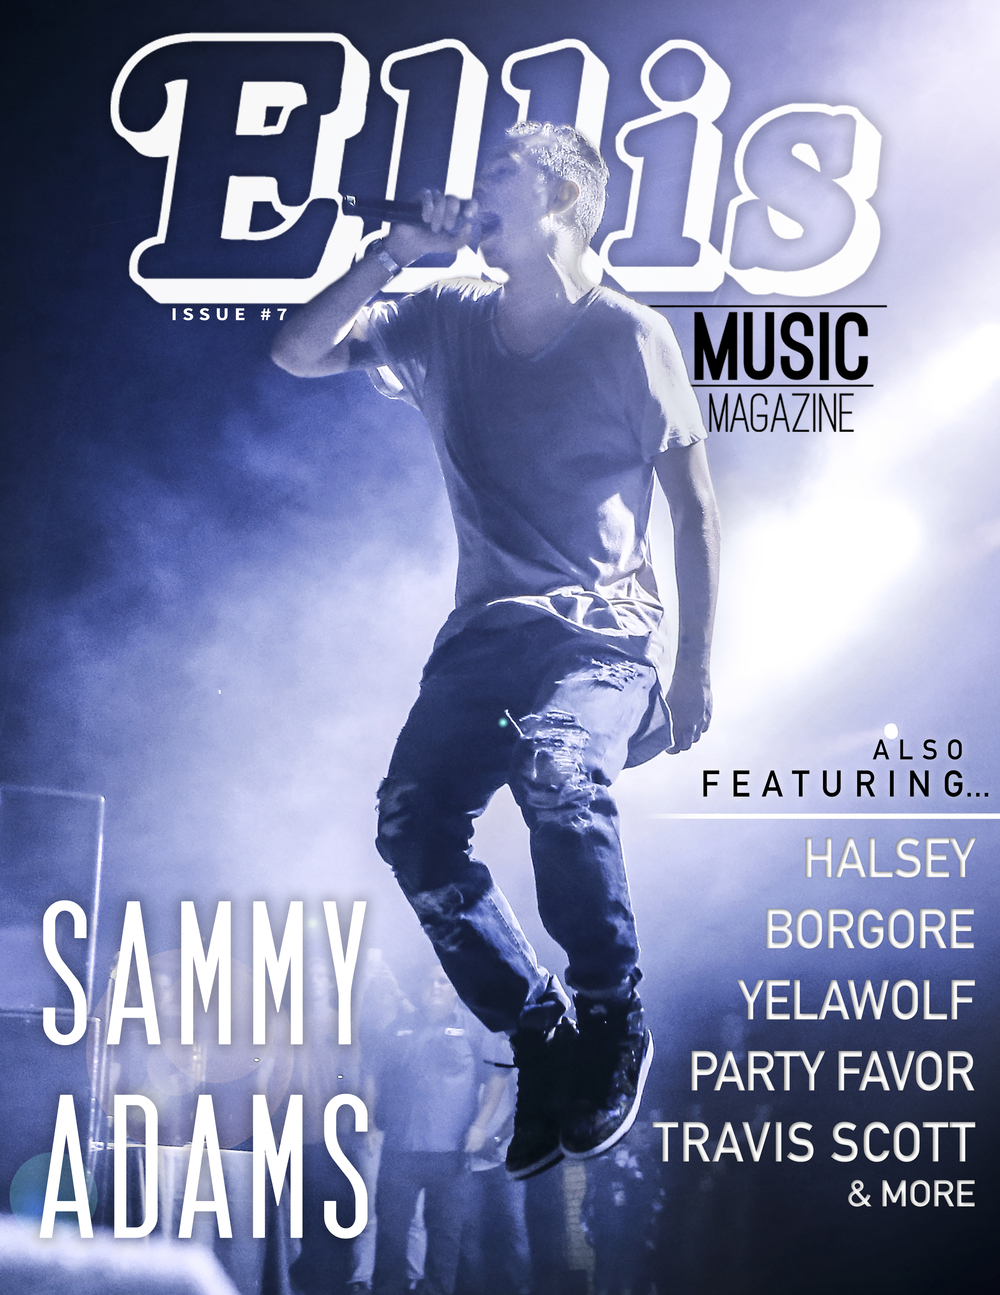 The cover of the seventh Ellis Music Magazine Issue that I photographed and designed